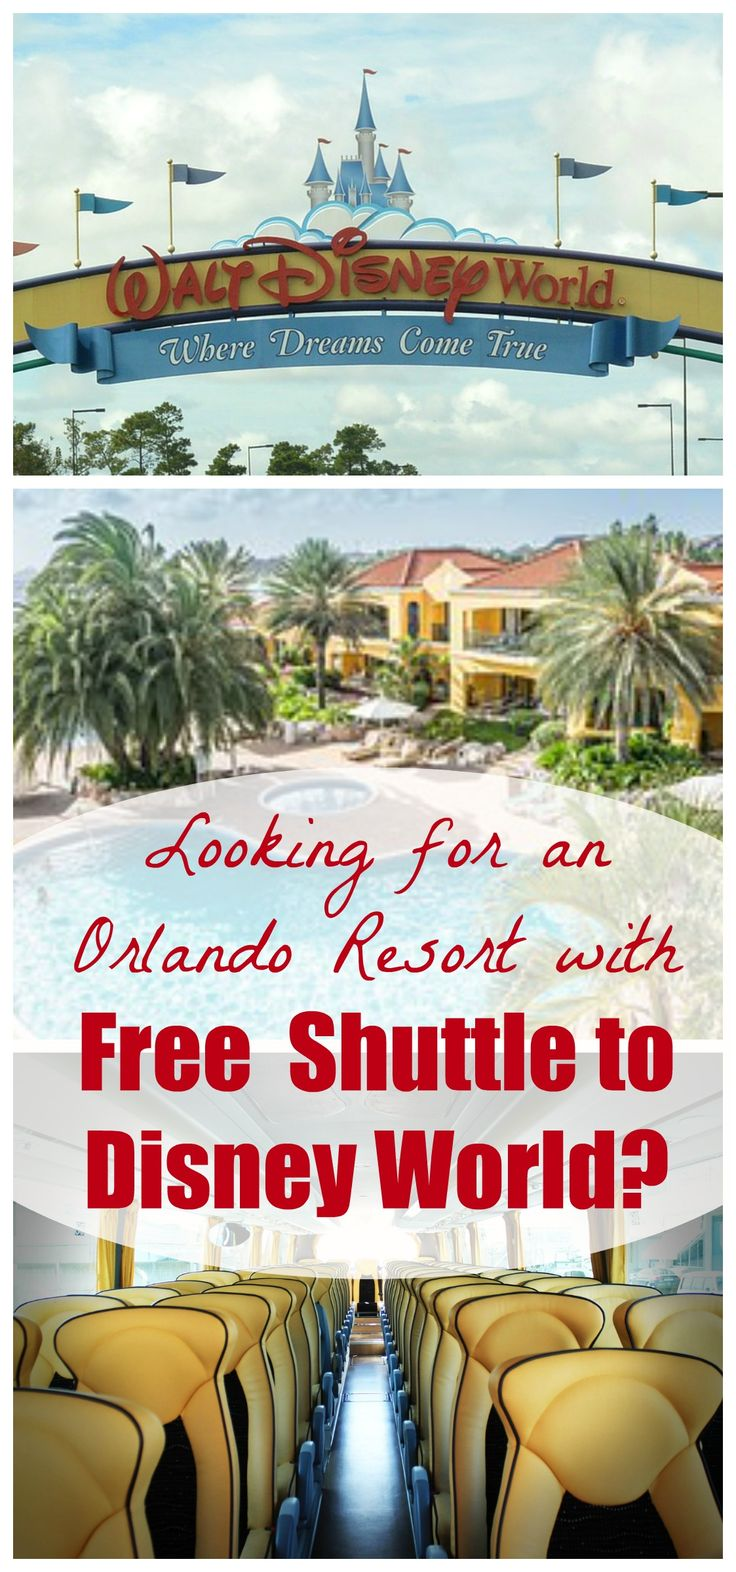 Orlando resorts condos that provide free shuttle to disney world great way to save